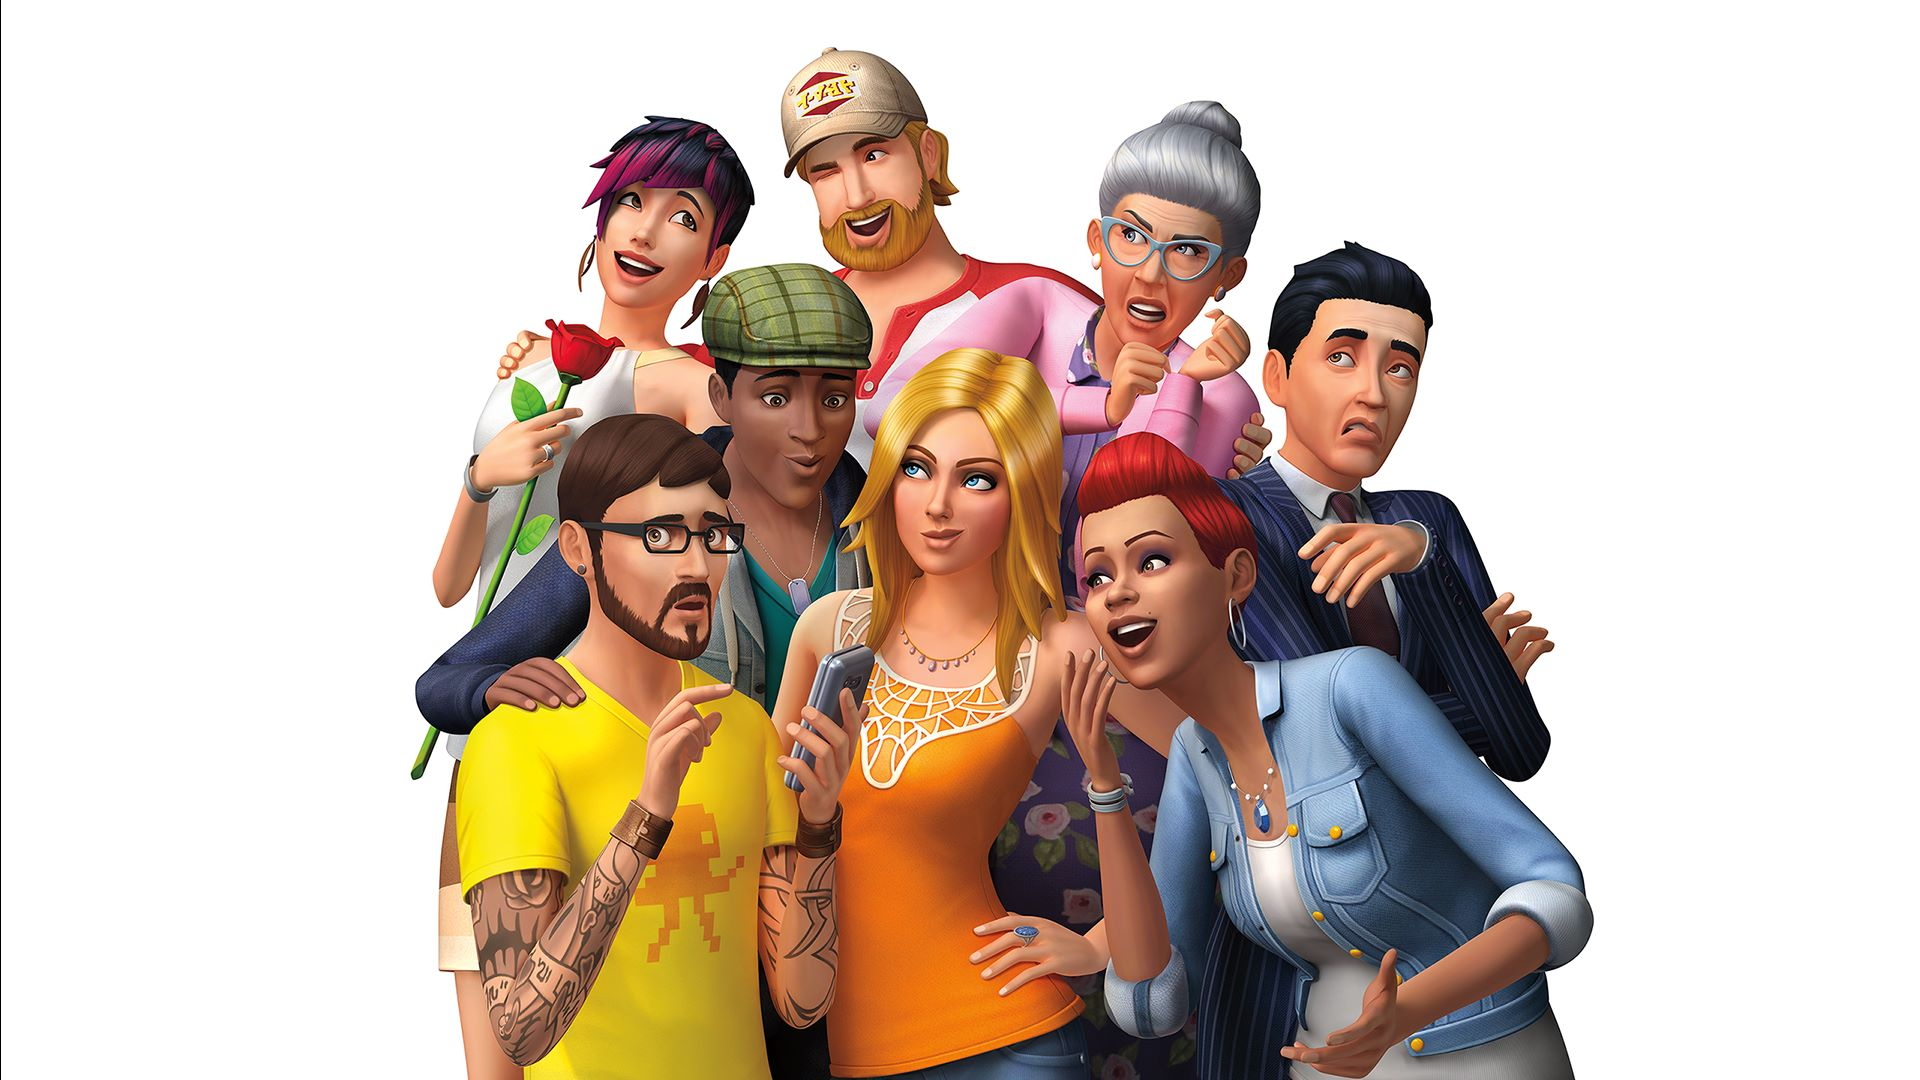 「the sims 4」の画像検索結果